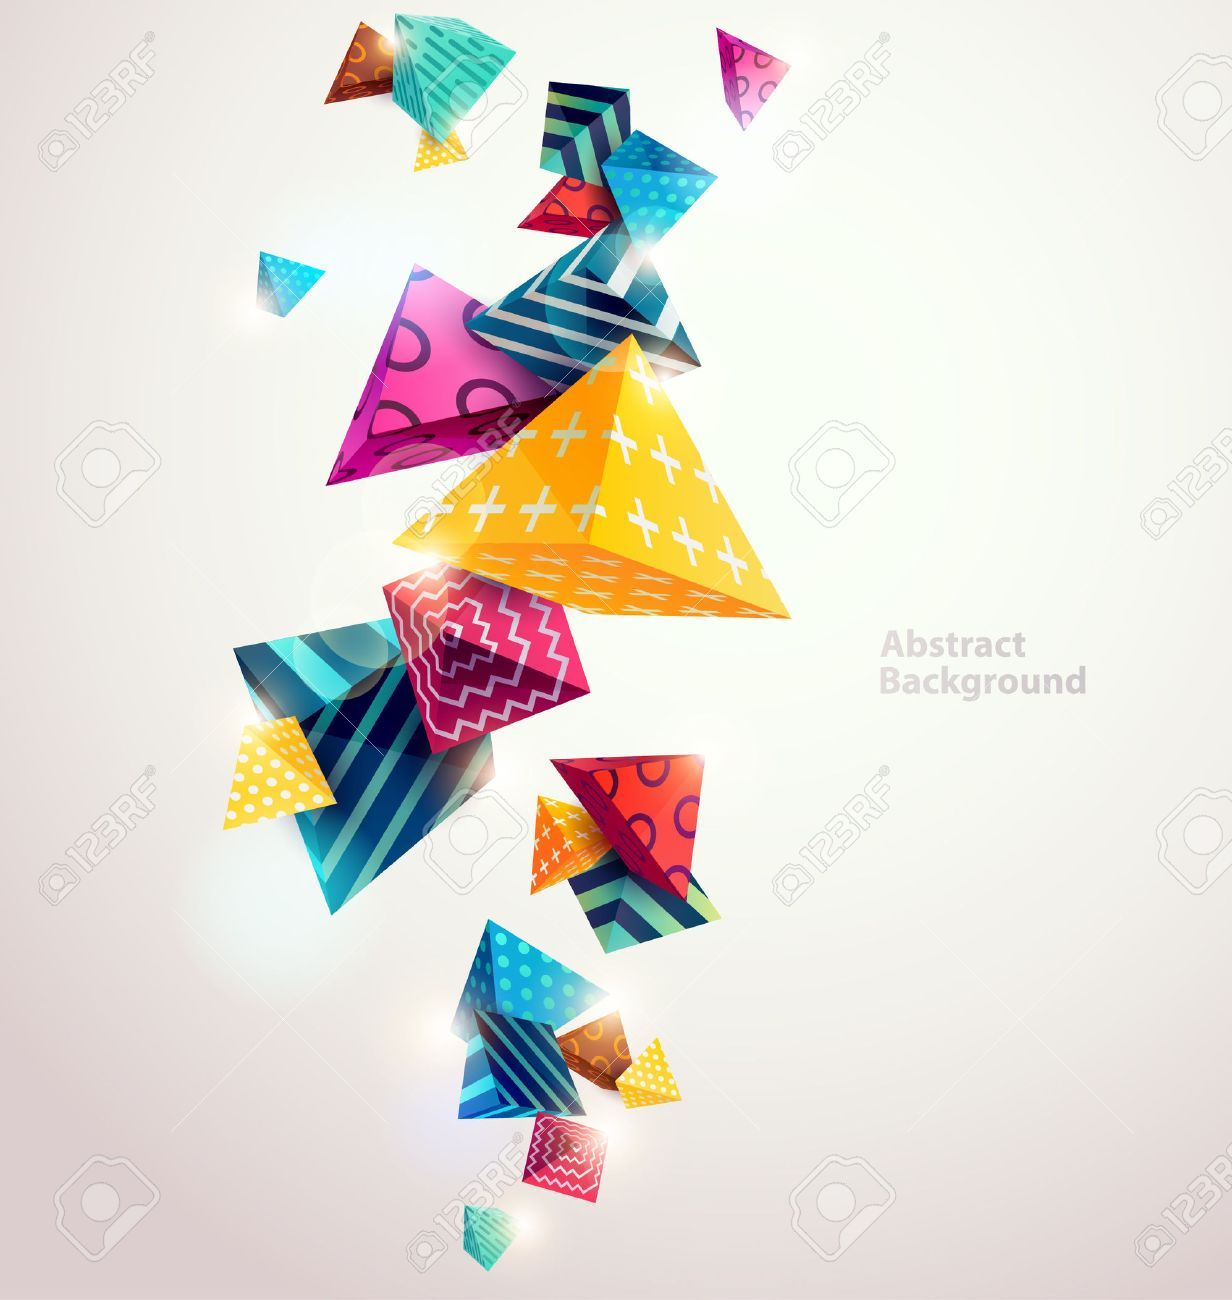 Abstract colorful background with geometric elements - 54352798